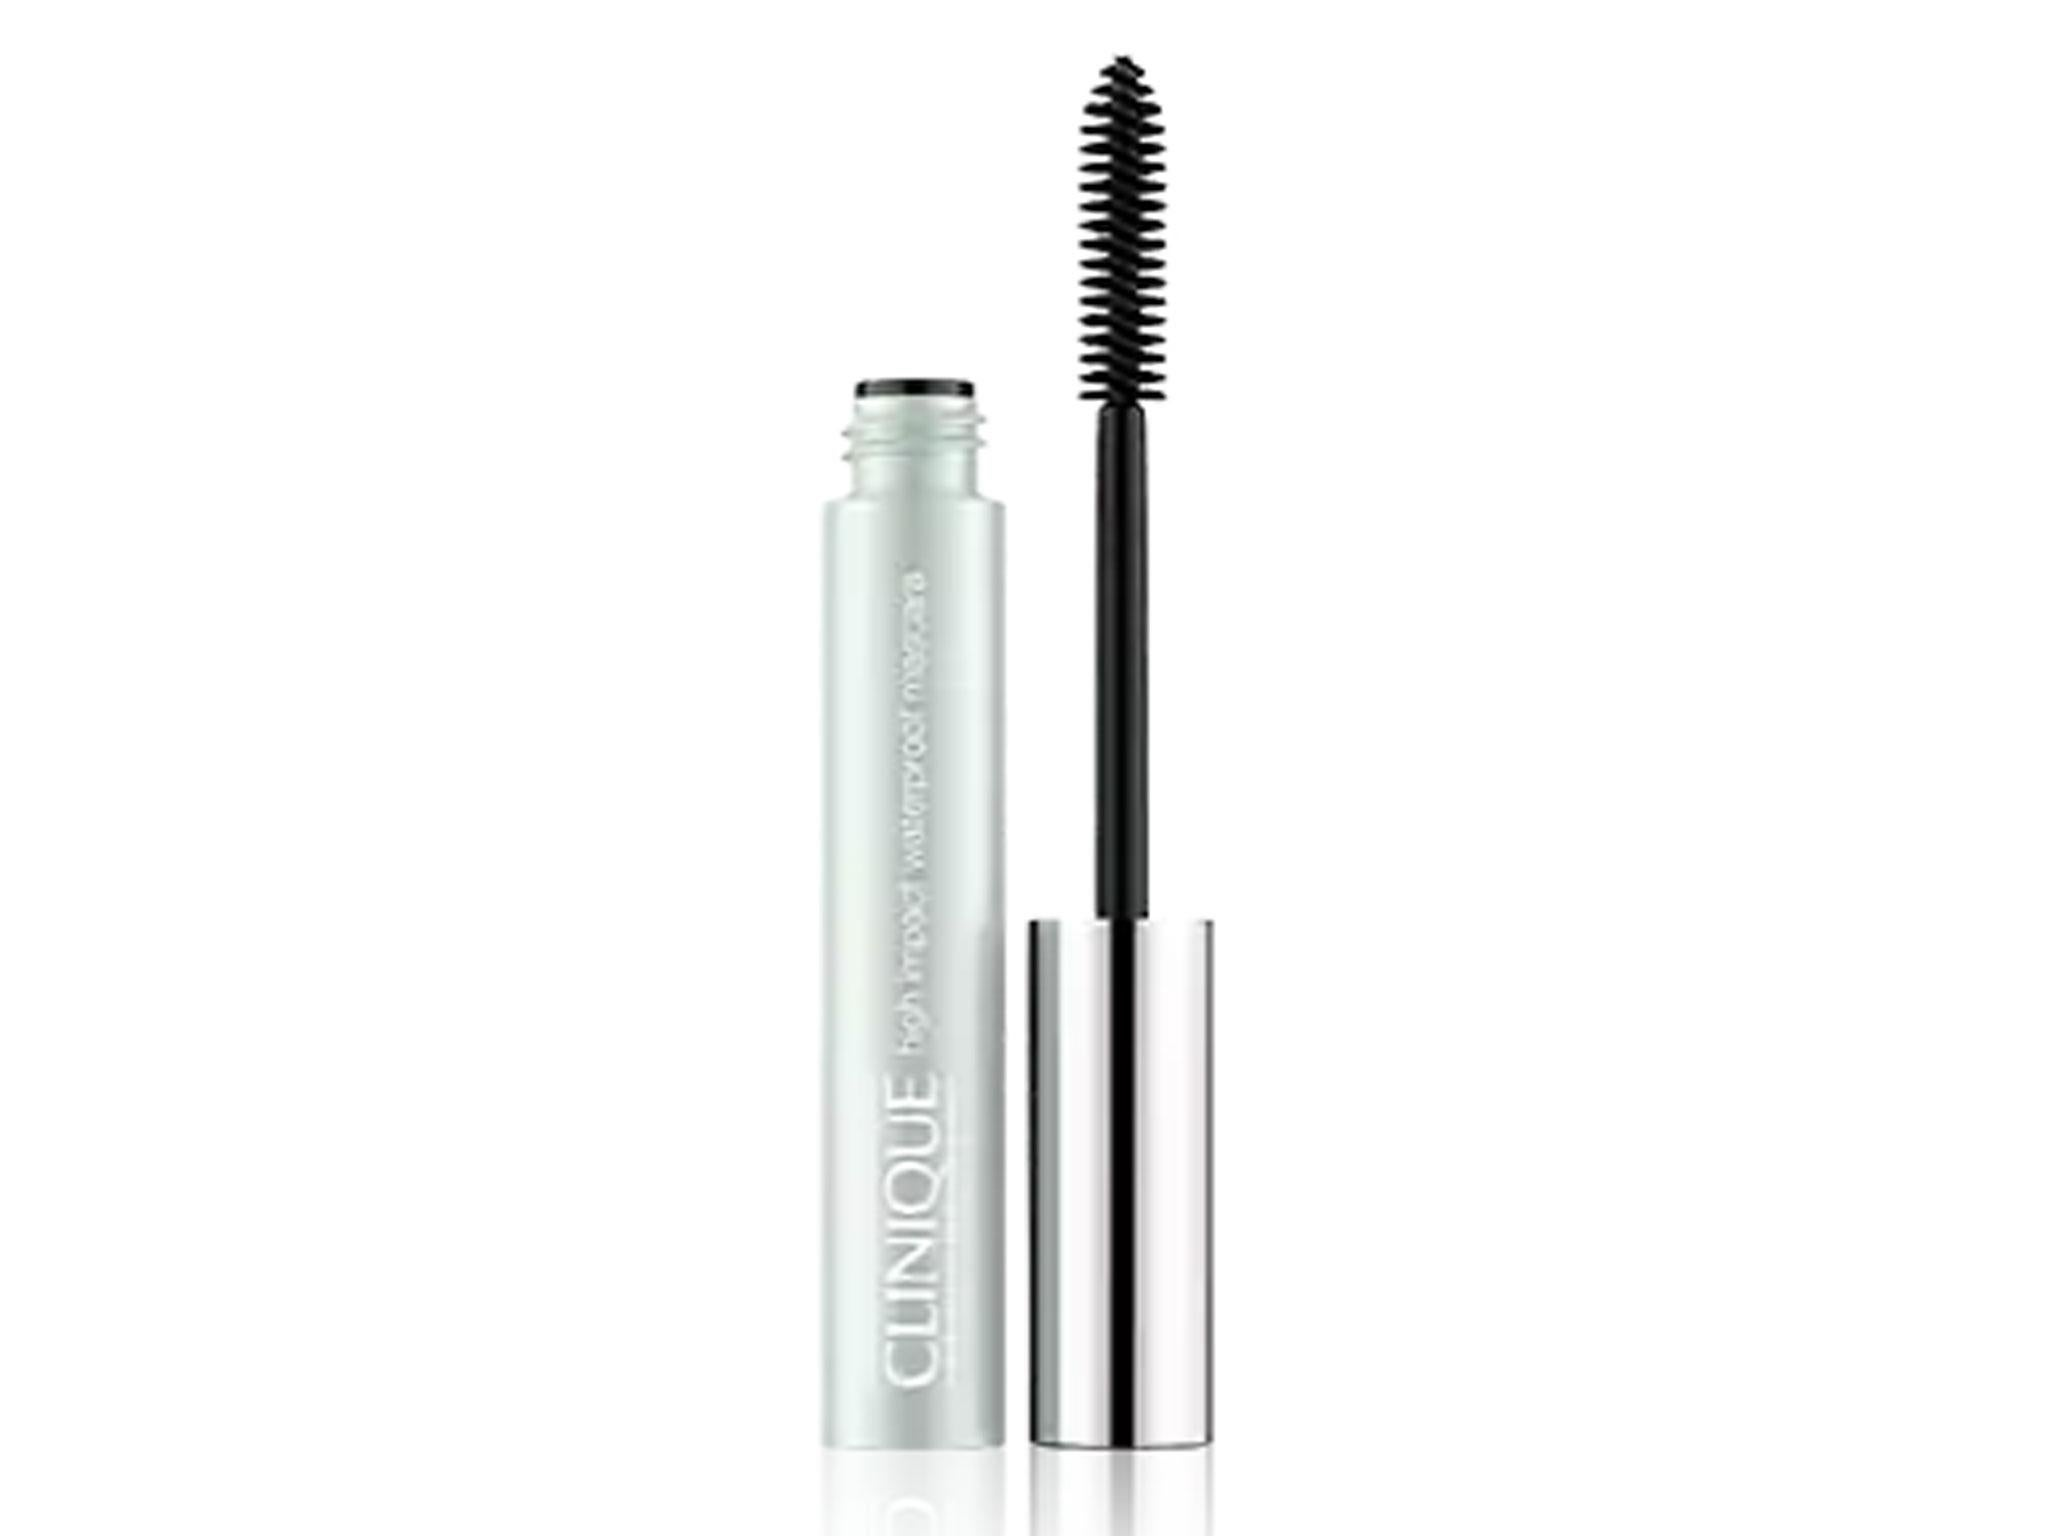 11 Best Waterproof Mascaras The Independent